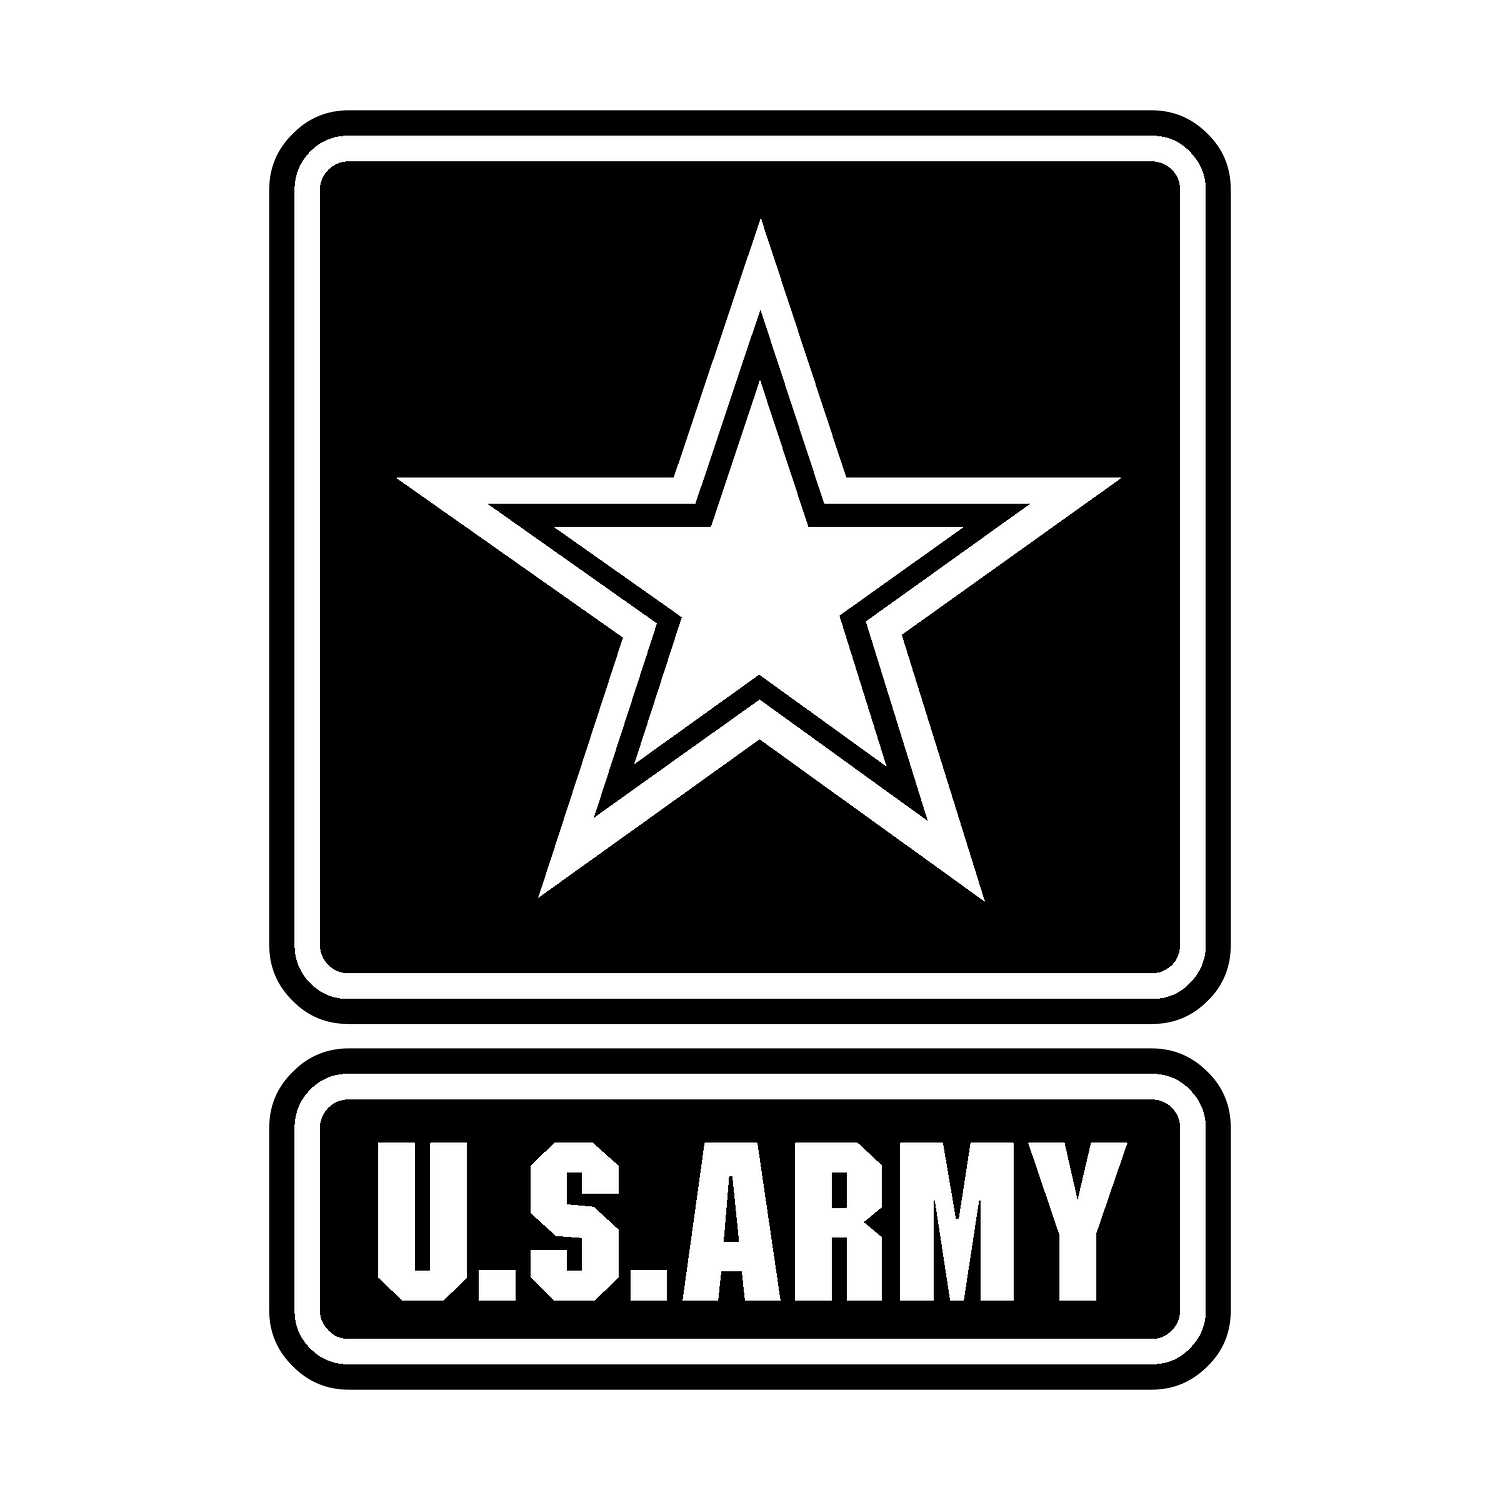 us-army-logo-black-and-white